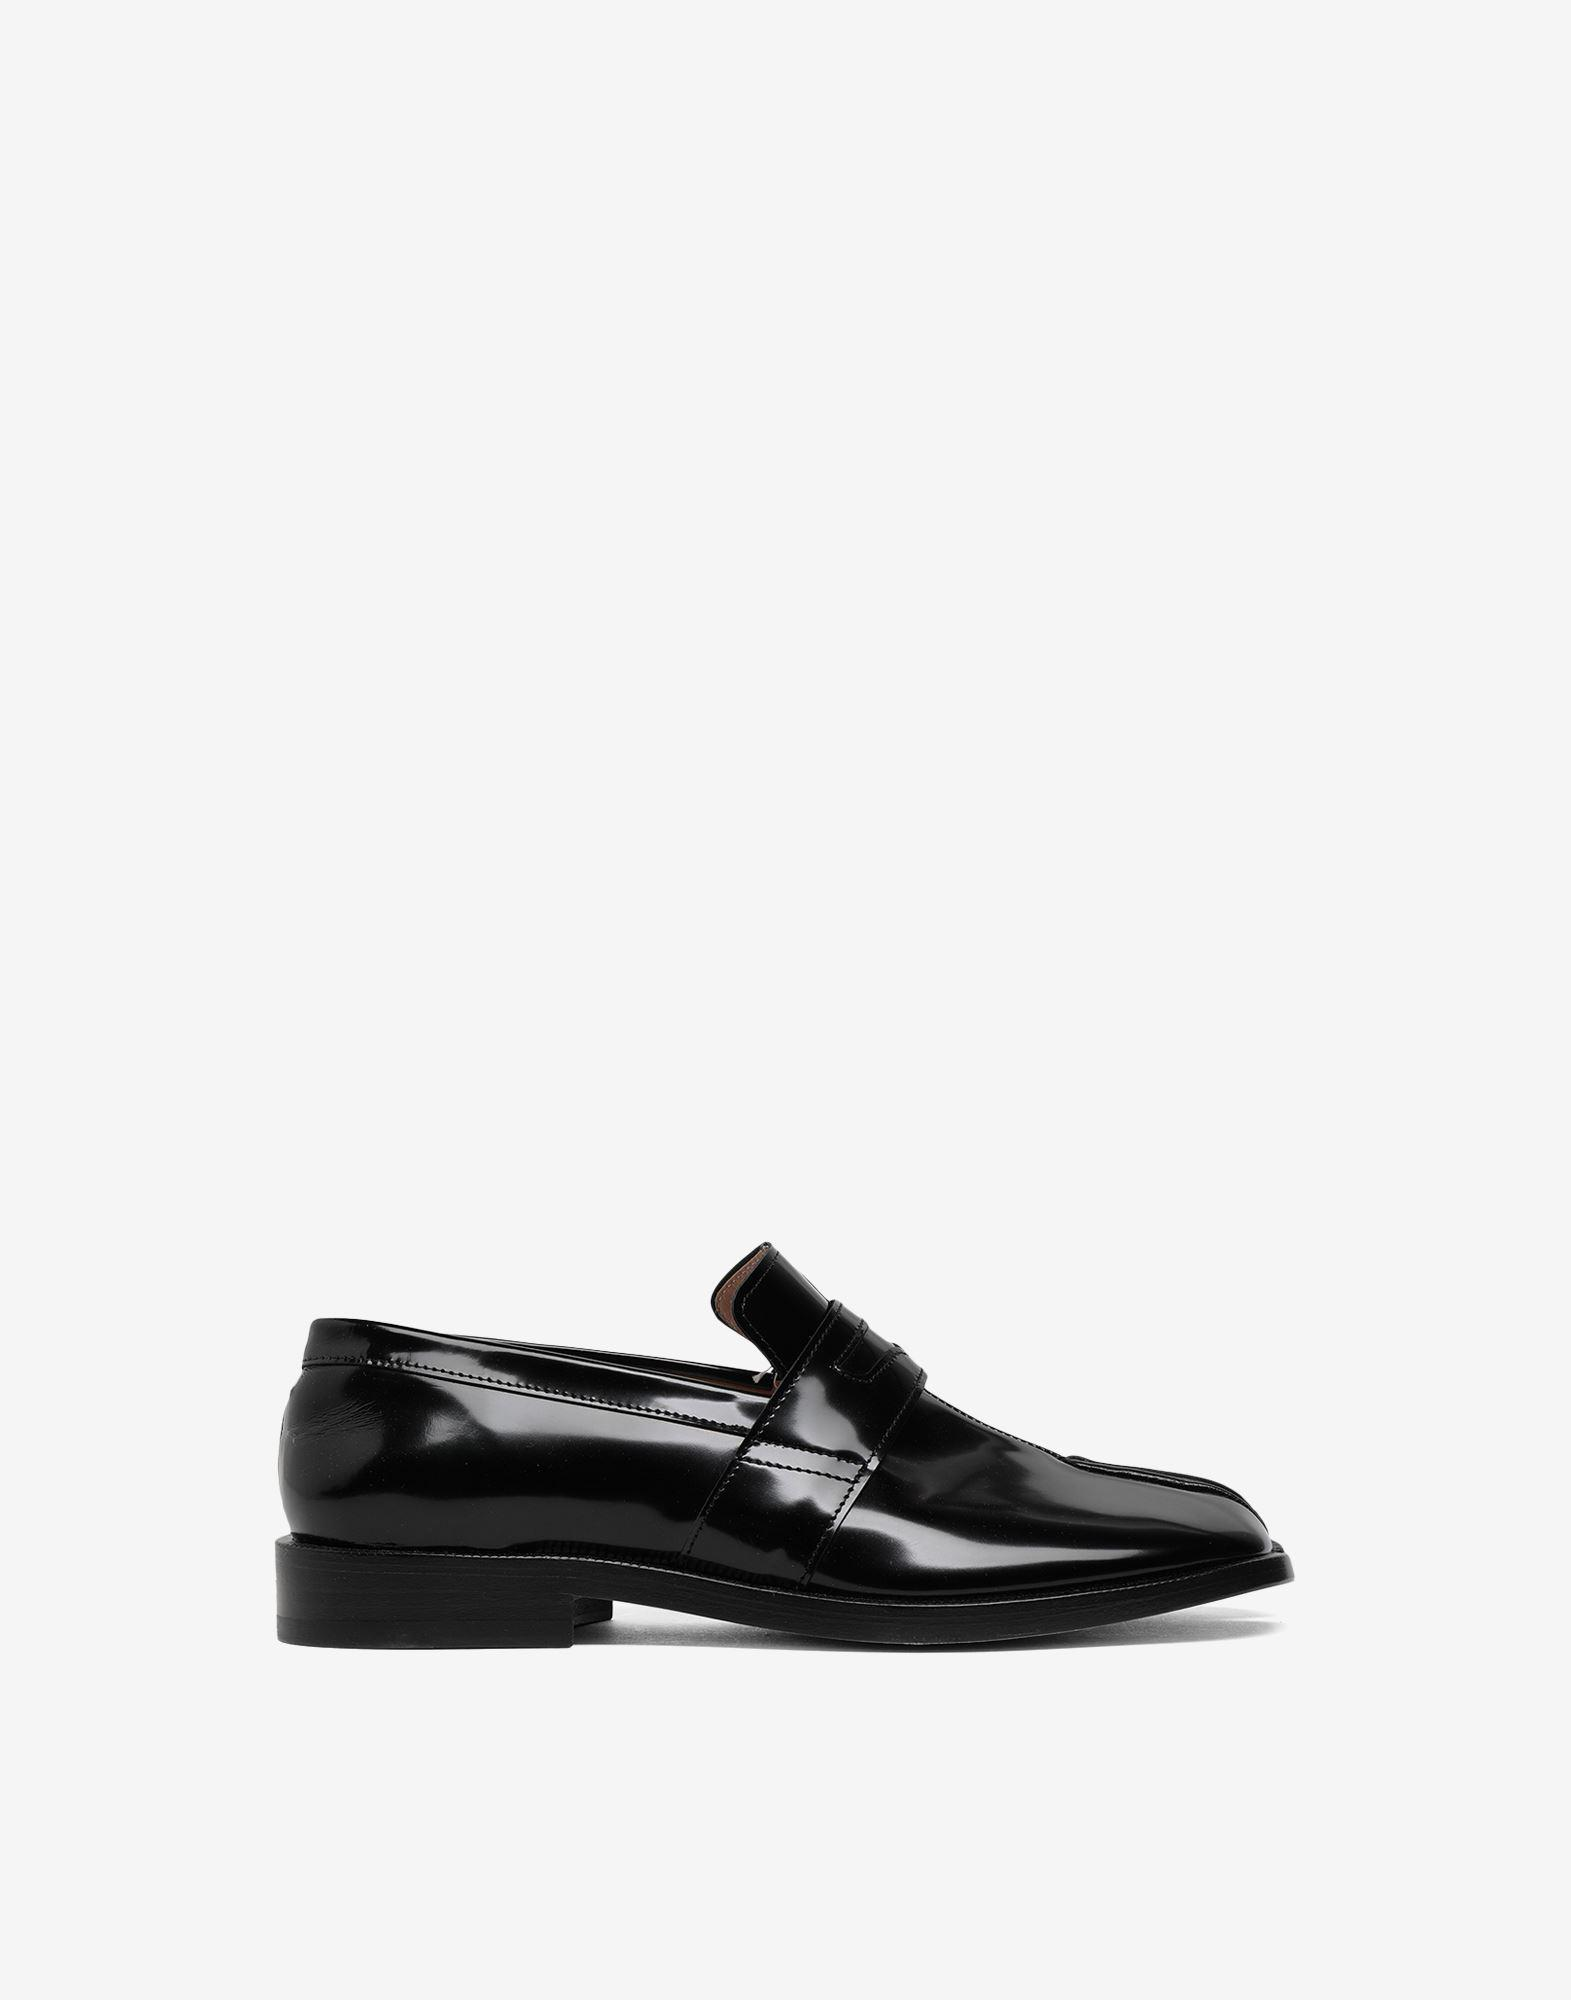 Tabi leather loafers